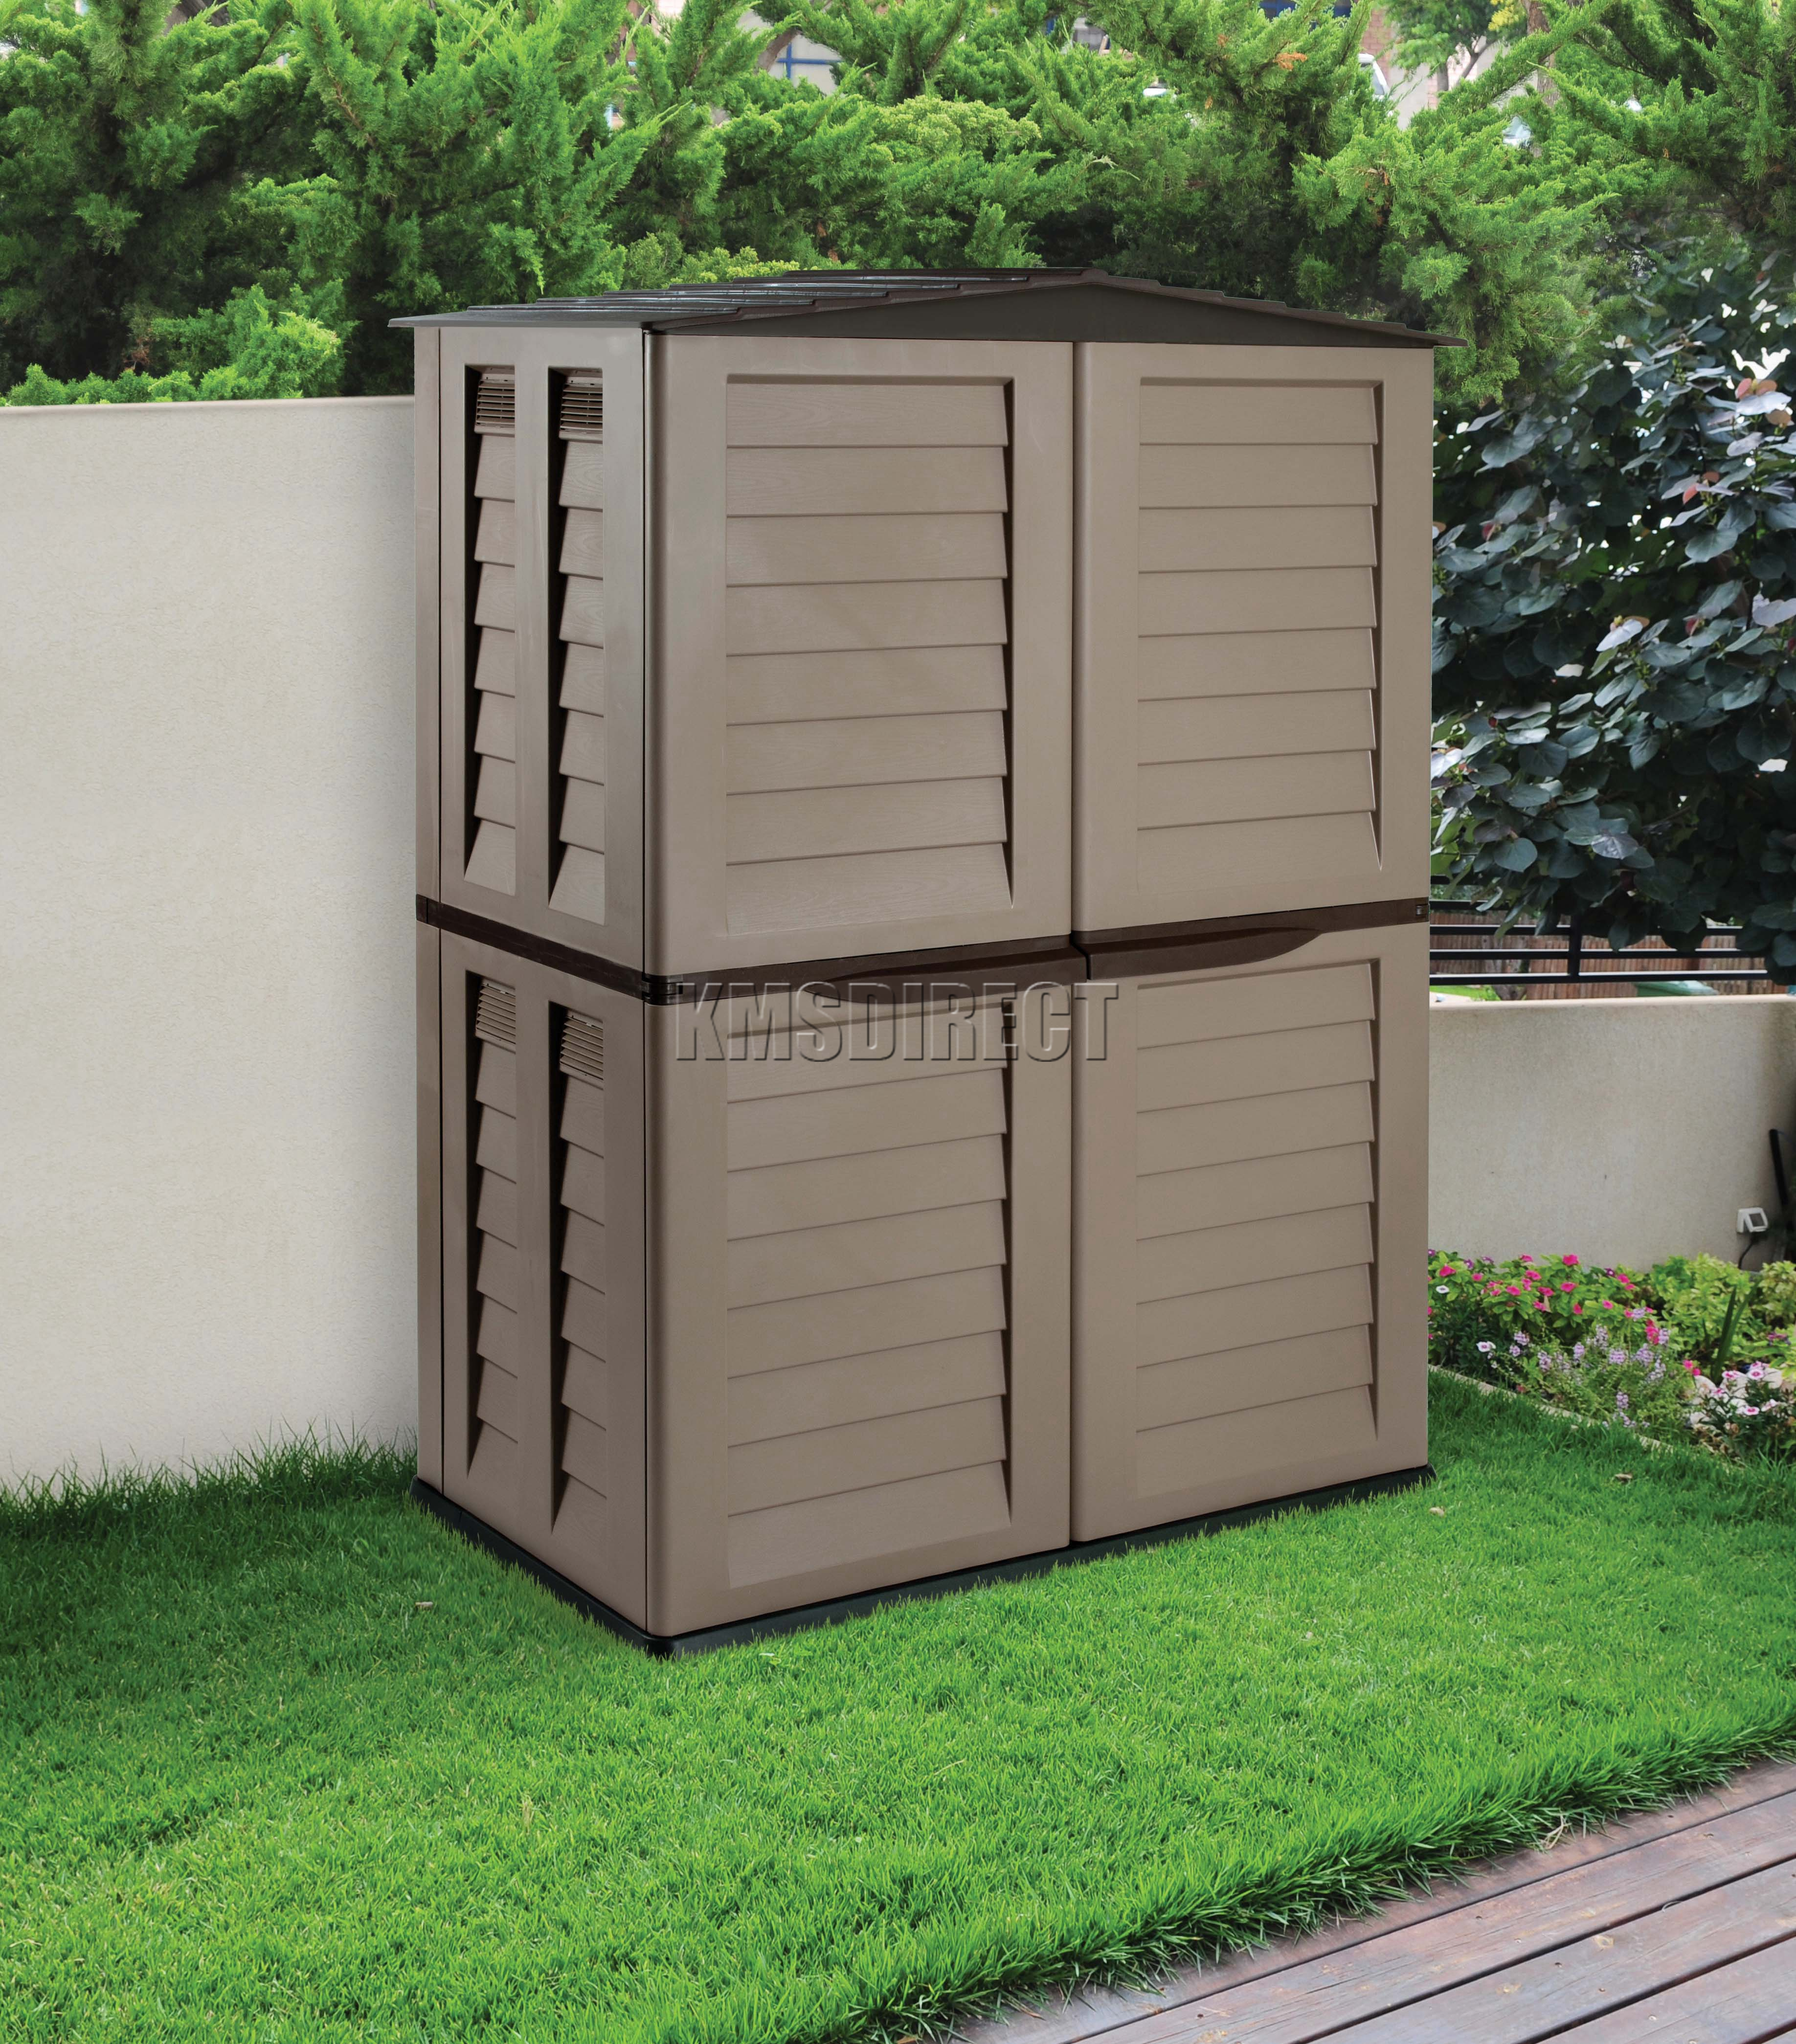 starplast outdoor plastic garden tall shed box storage. Black Bedroom Furniture Sets. Home Design Ideas